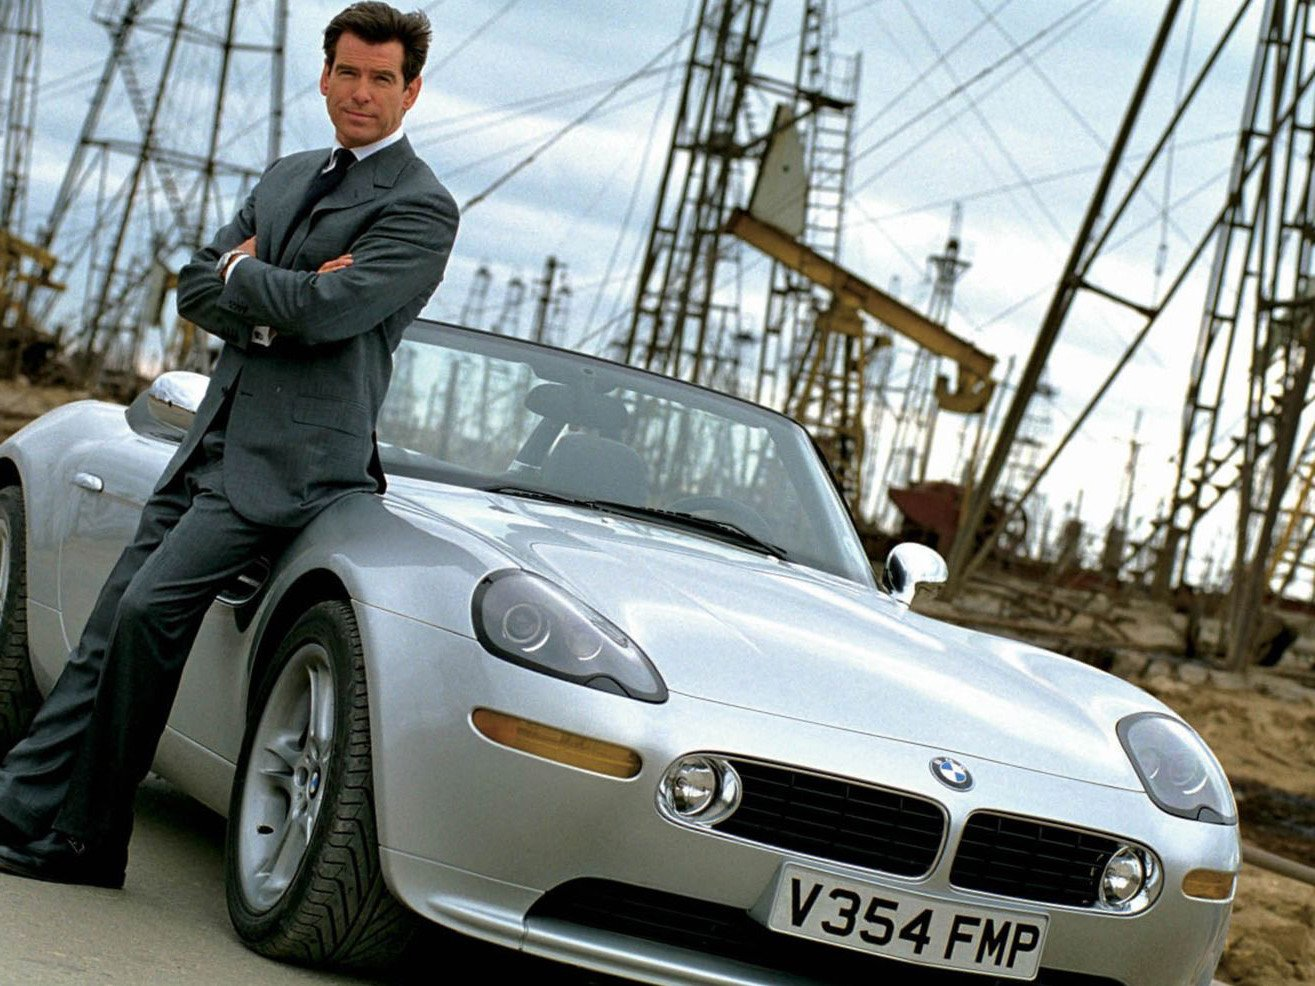 James Bond in Baku Oil Fields, Pierce Brosnan in The World is Not Enough